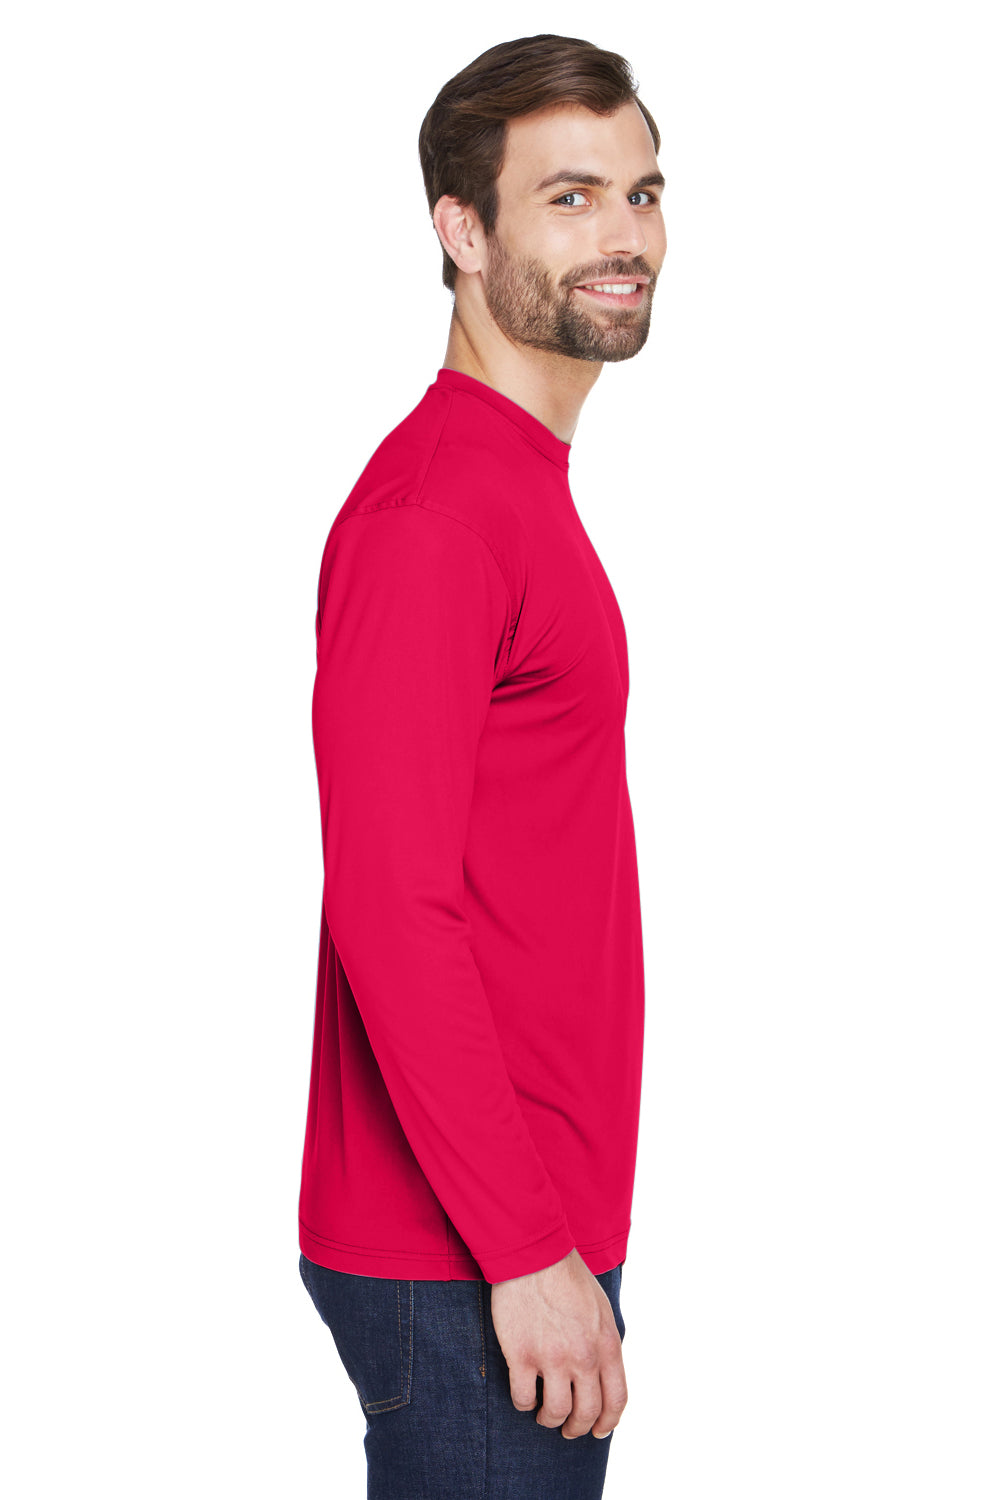 UltraClub 8422 Mens Cool & Dry Performance Moisture Wicking Long Sleeve Crewneck T-Shirt Red Side